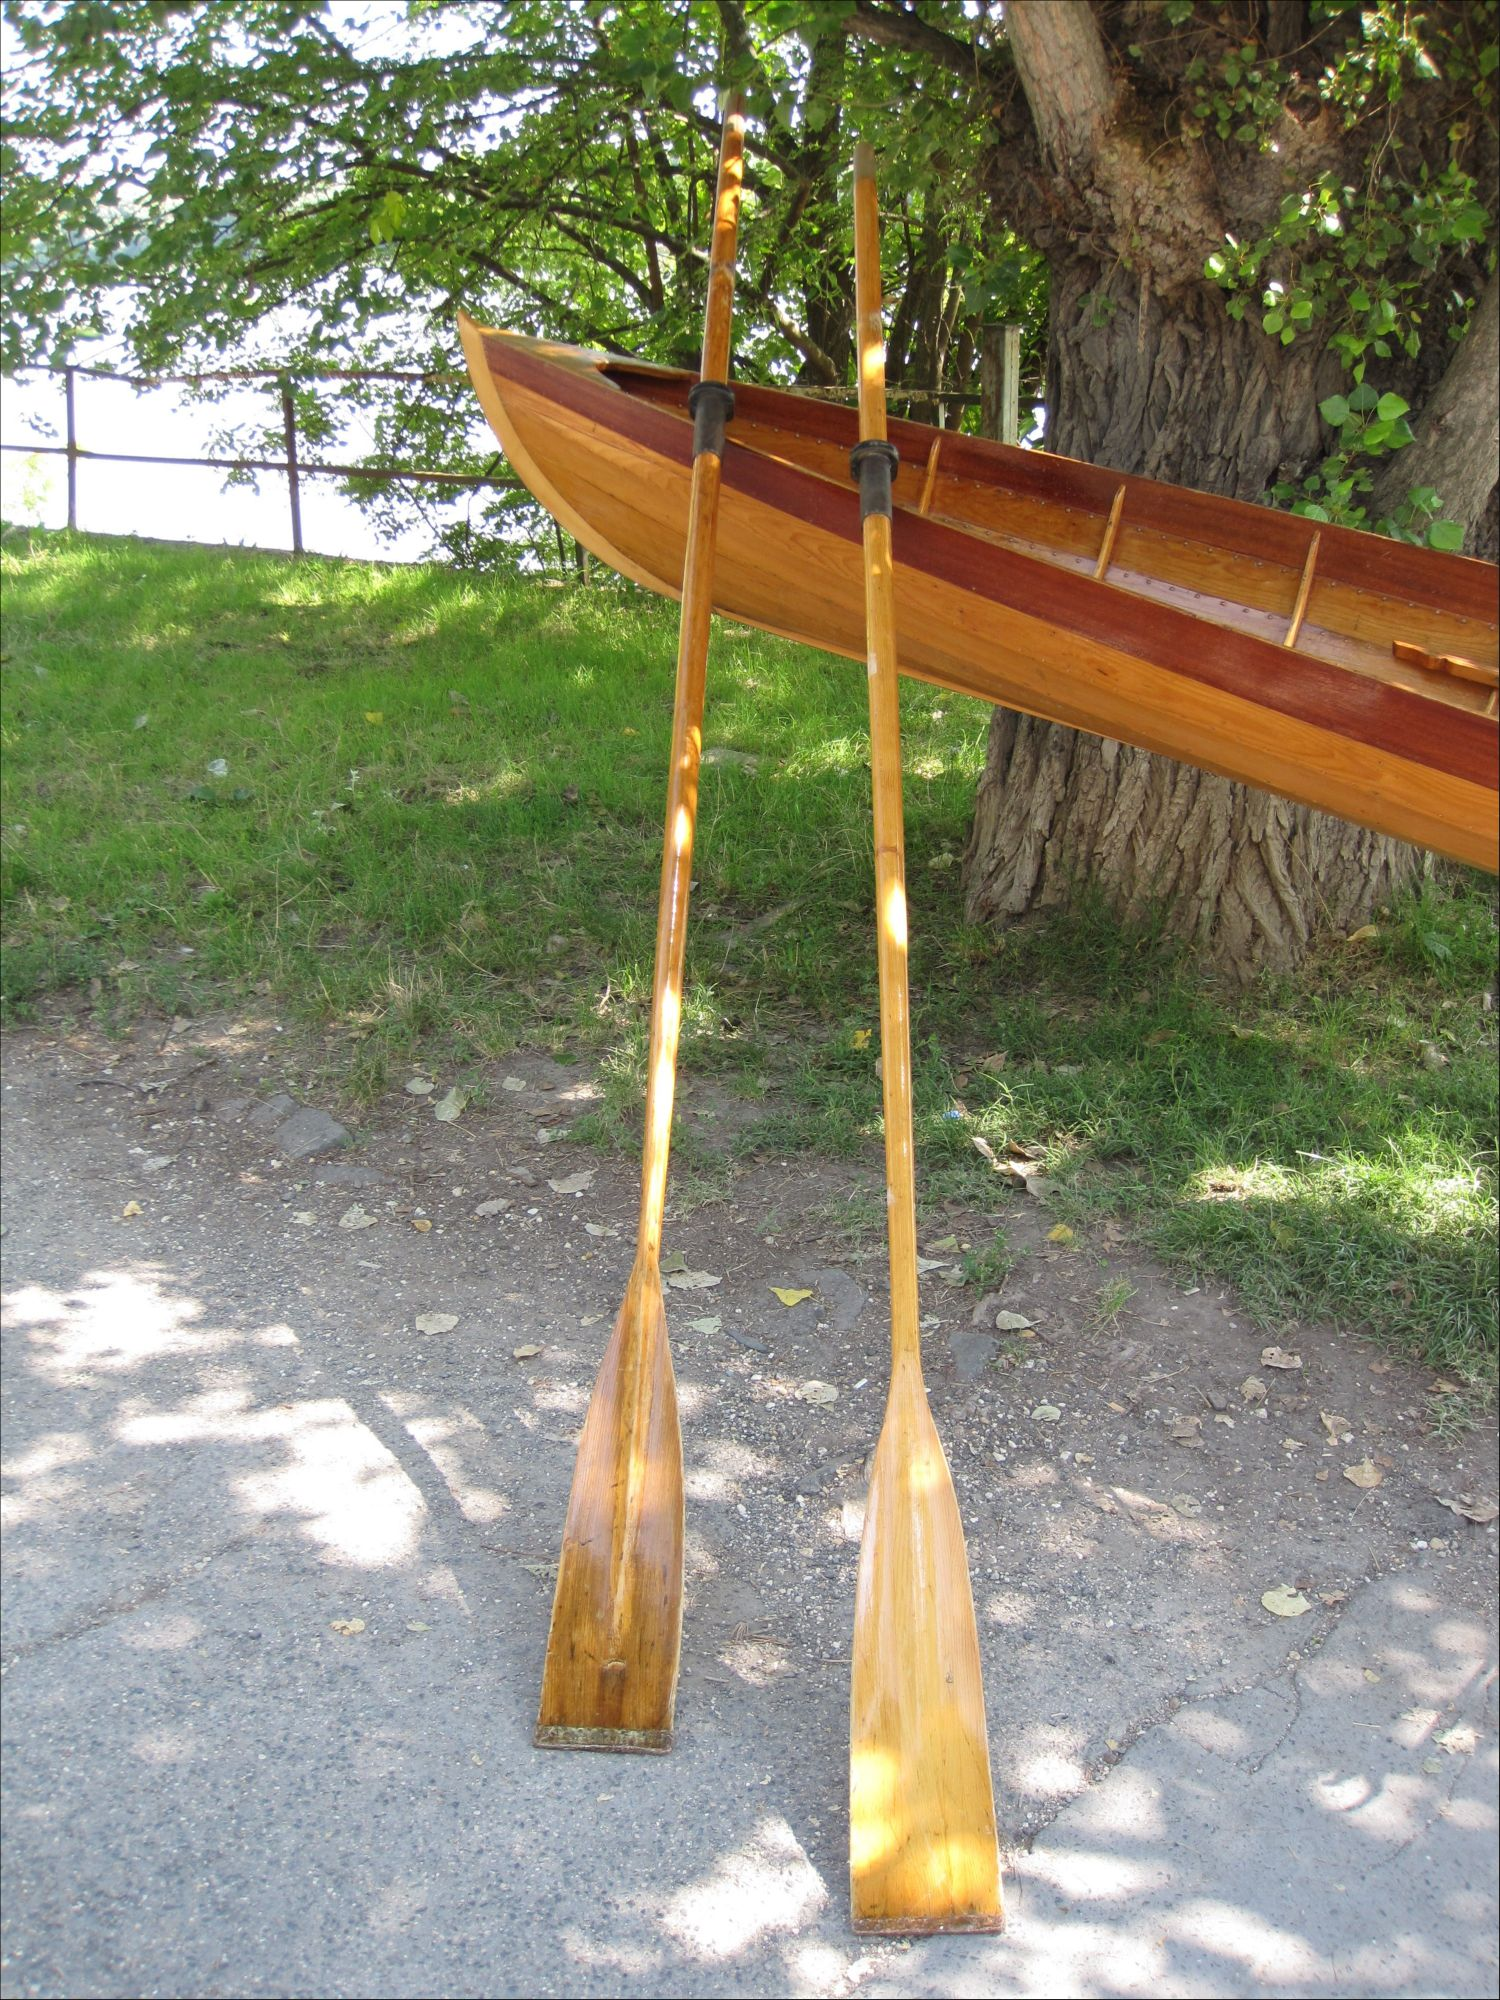 Stupendous Mid Century Modern Rowing Boat 1950S Caraccident5 Cool Chair Designs And Ideas Caraccident5Info